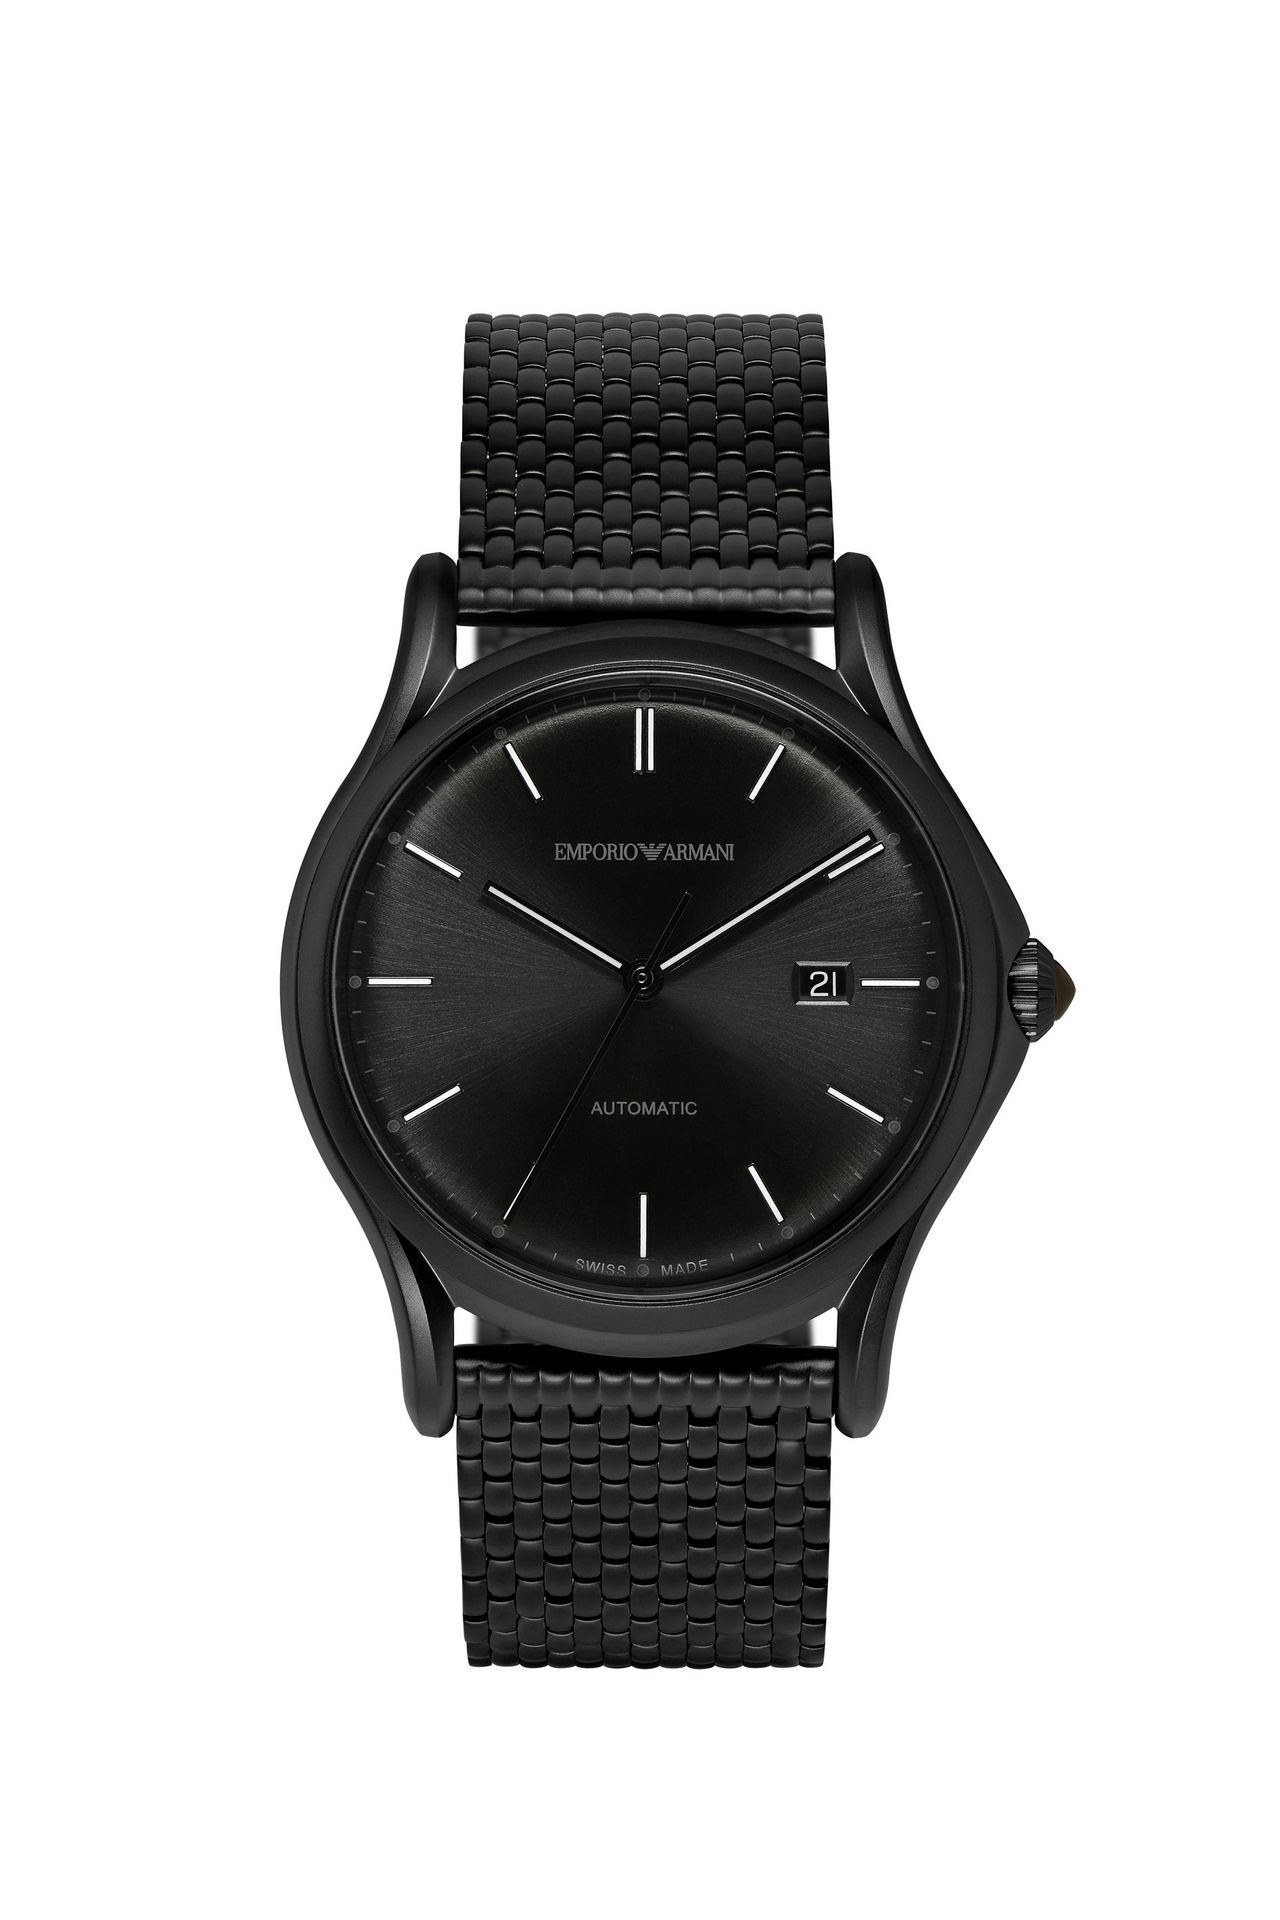 emporio armani men swiss made automatic watch steel strap swiss made automatic watch steel strap swiss made watches men by armani 0